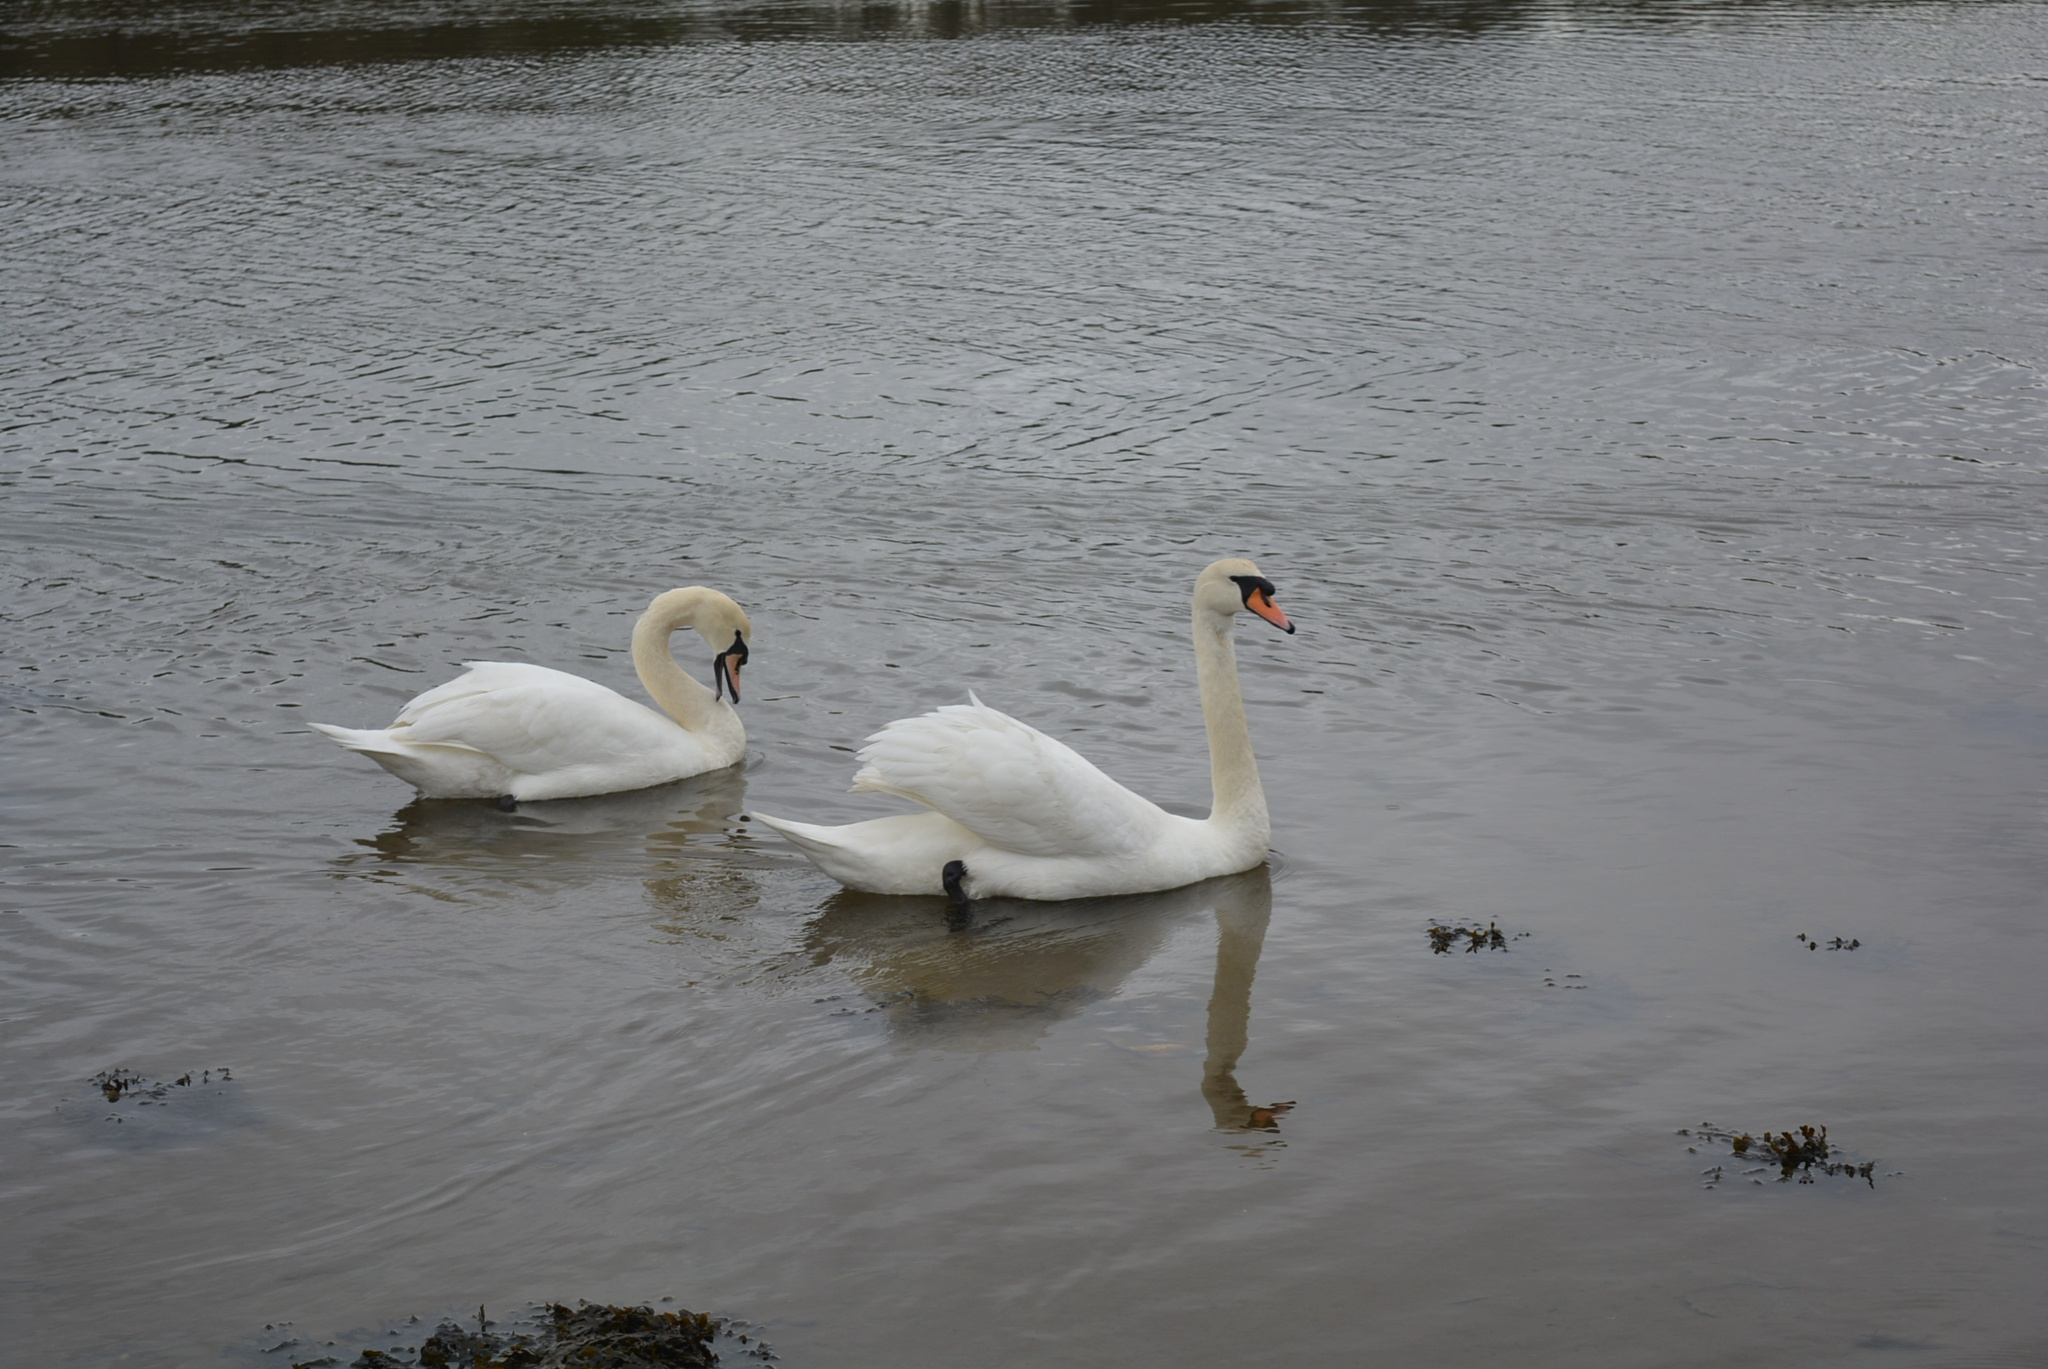 Two swans are swimming by Talana_smith